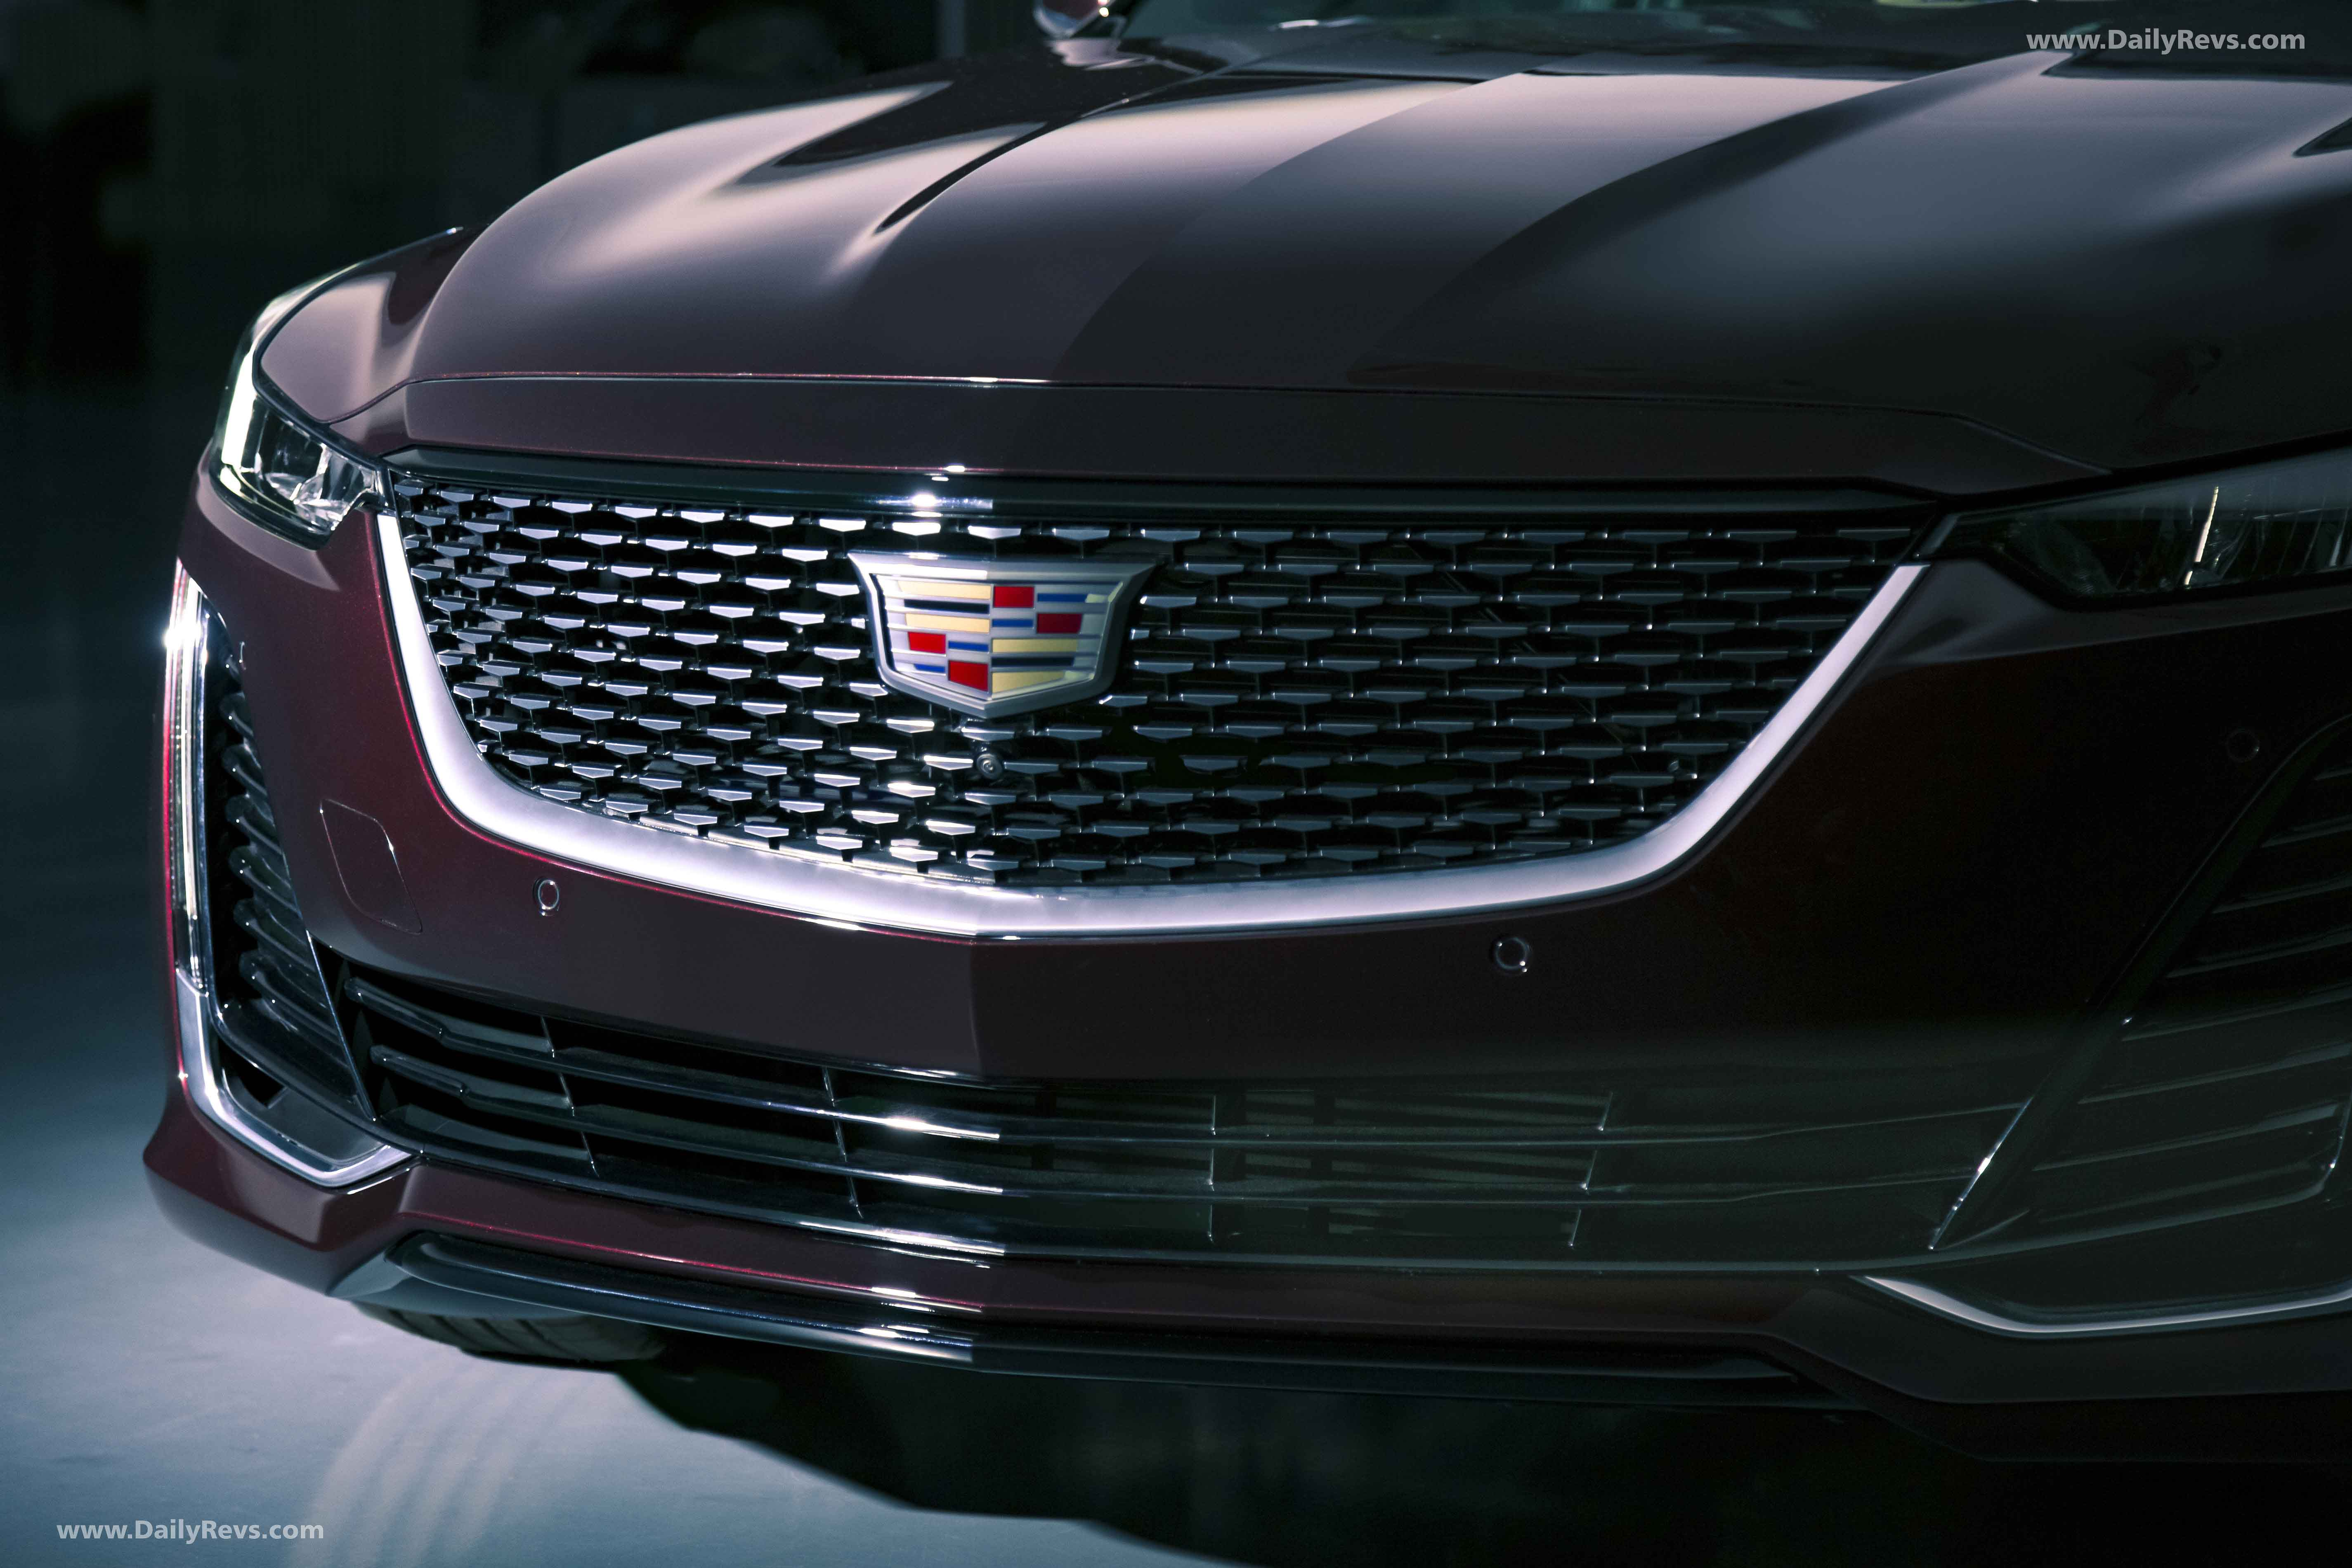 2020 cadillac ct5 - hd pictures, videos, specs